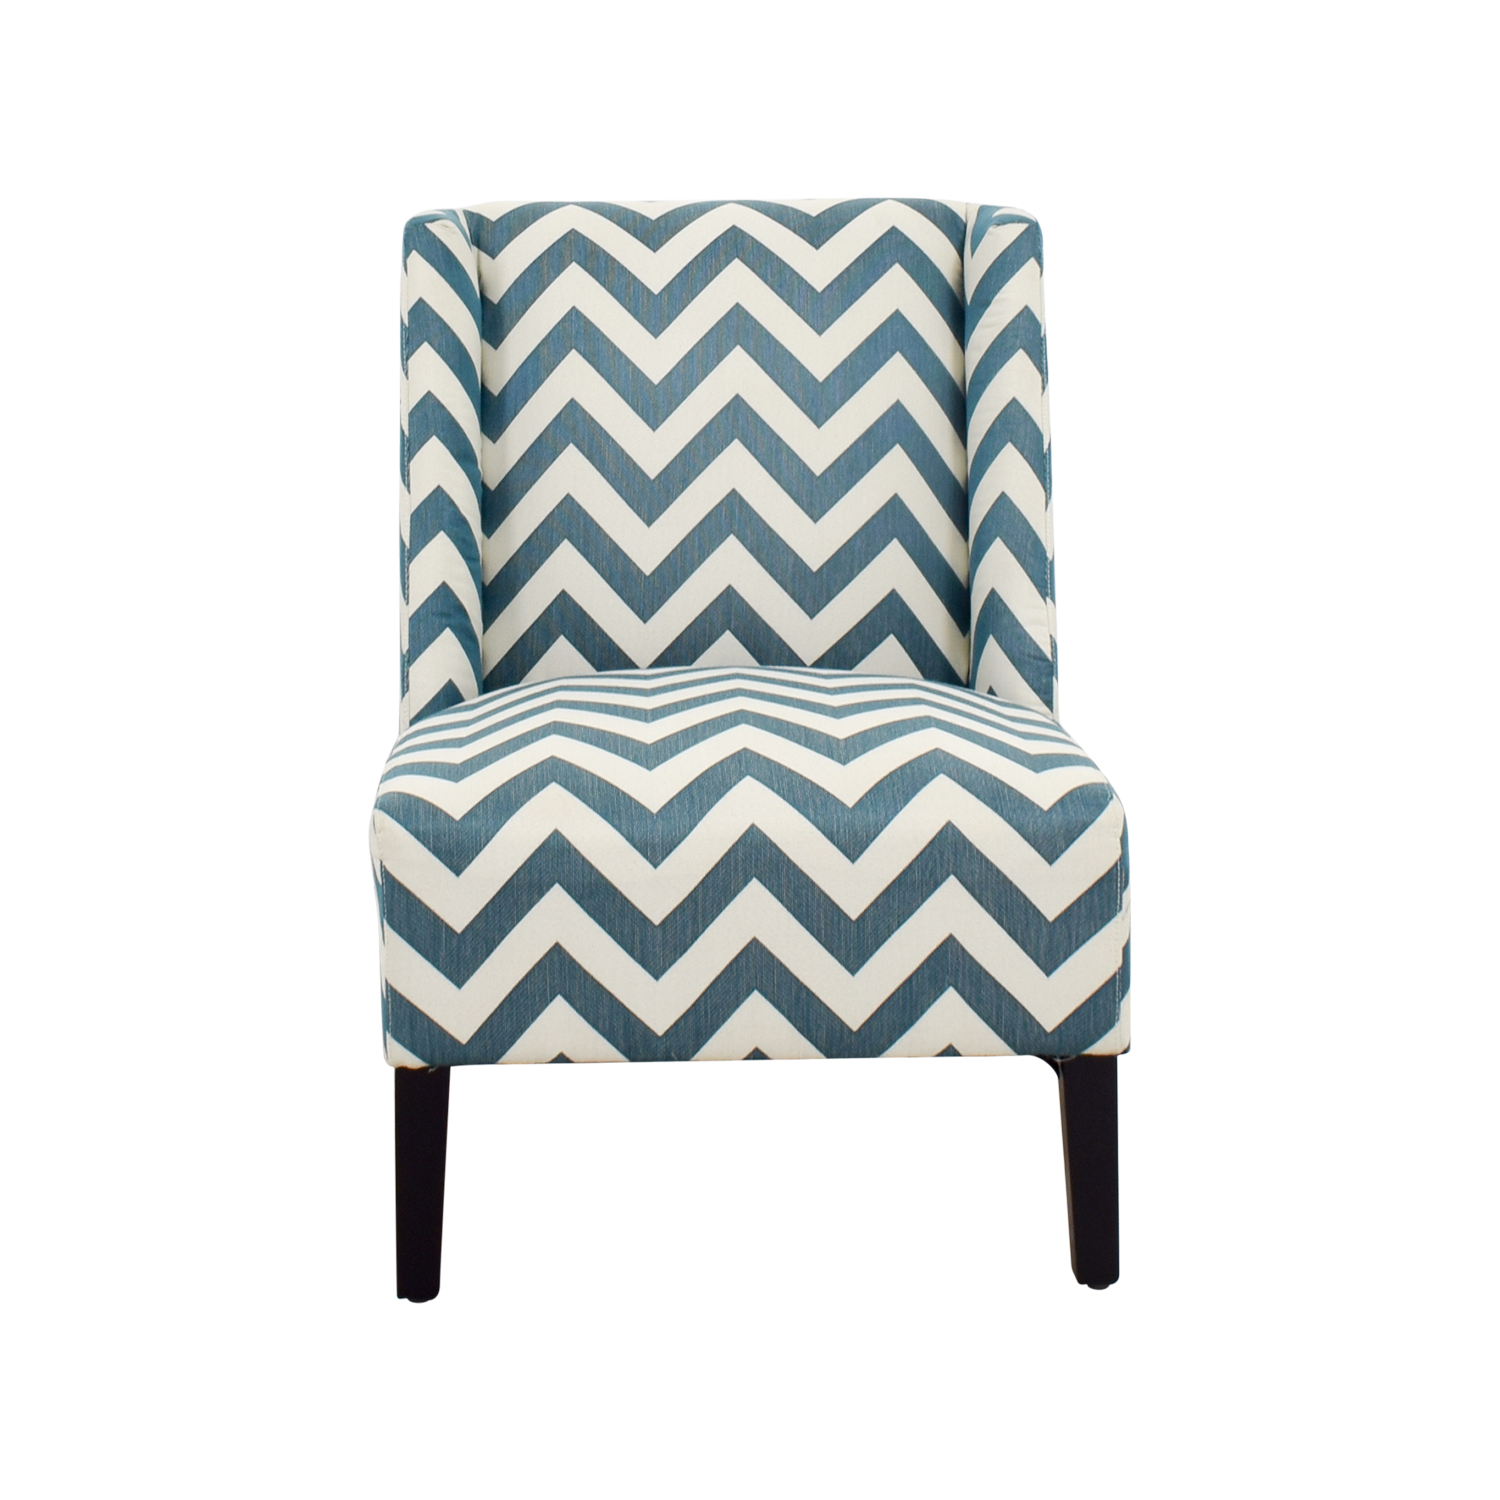 71 Off Pier 1 Pier 1 Imports Owen Wing Chair Chairs